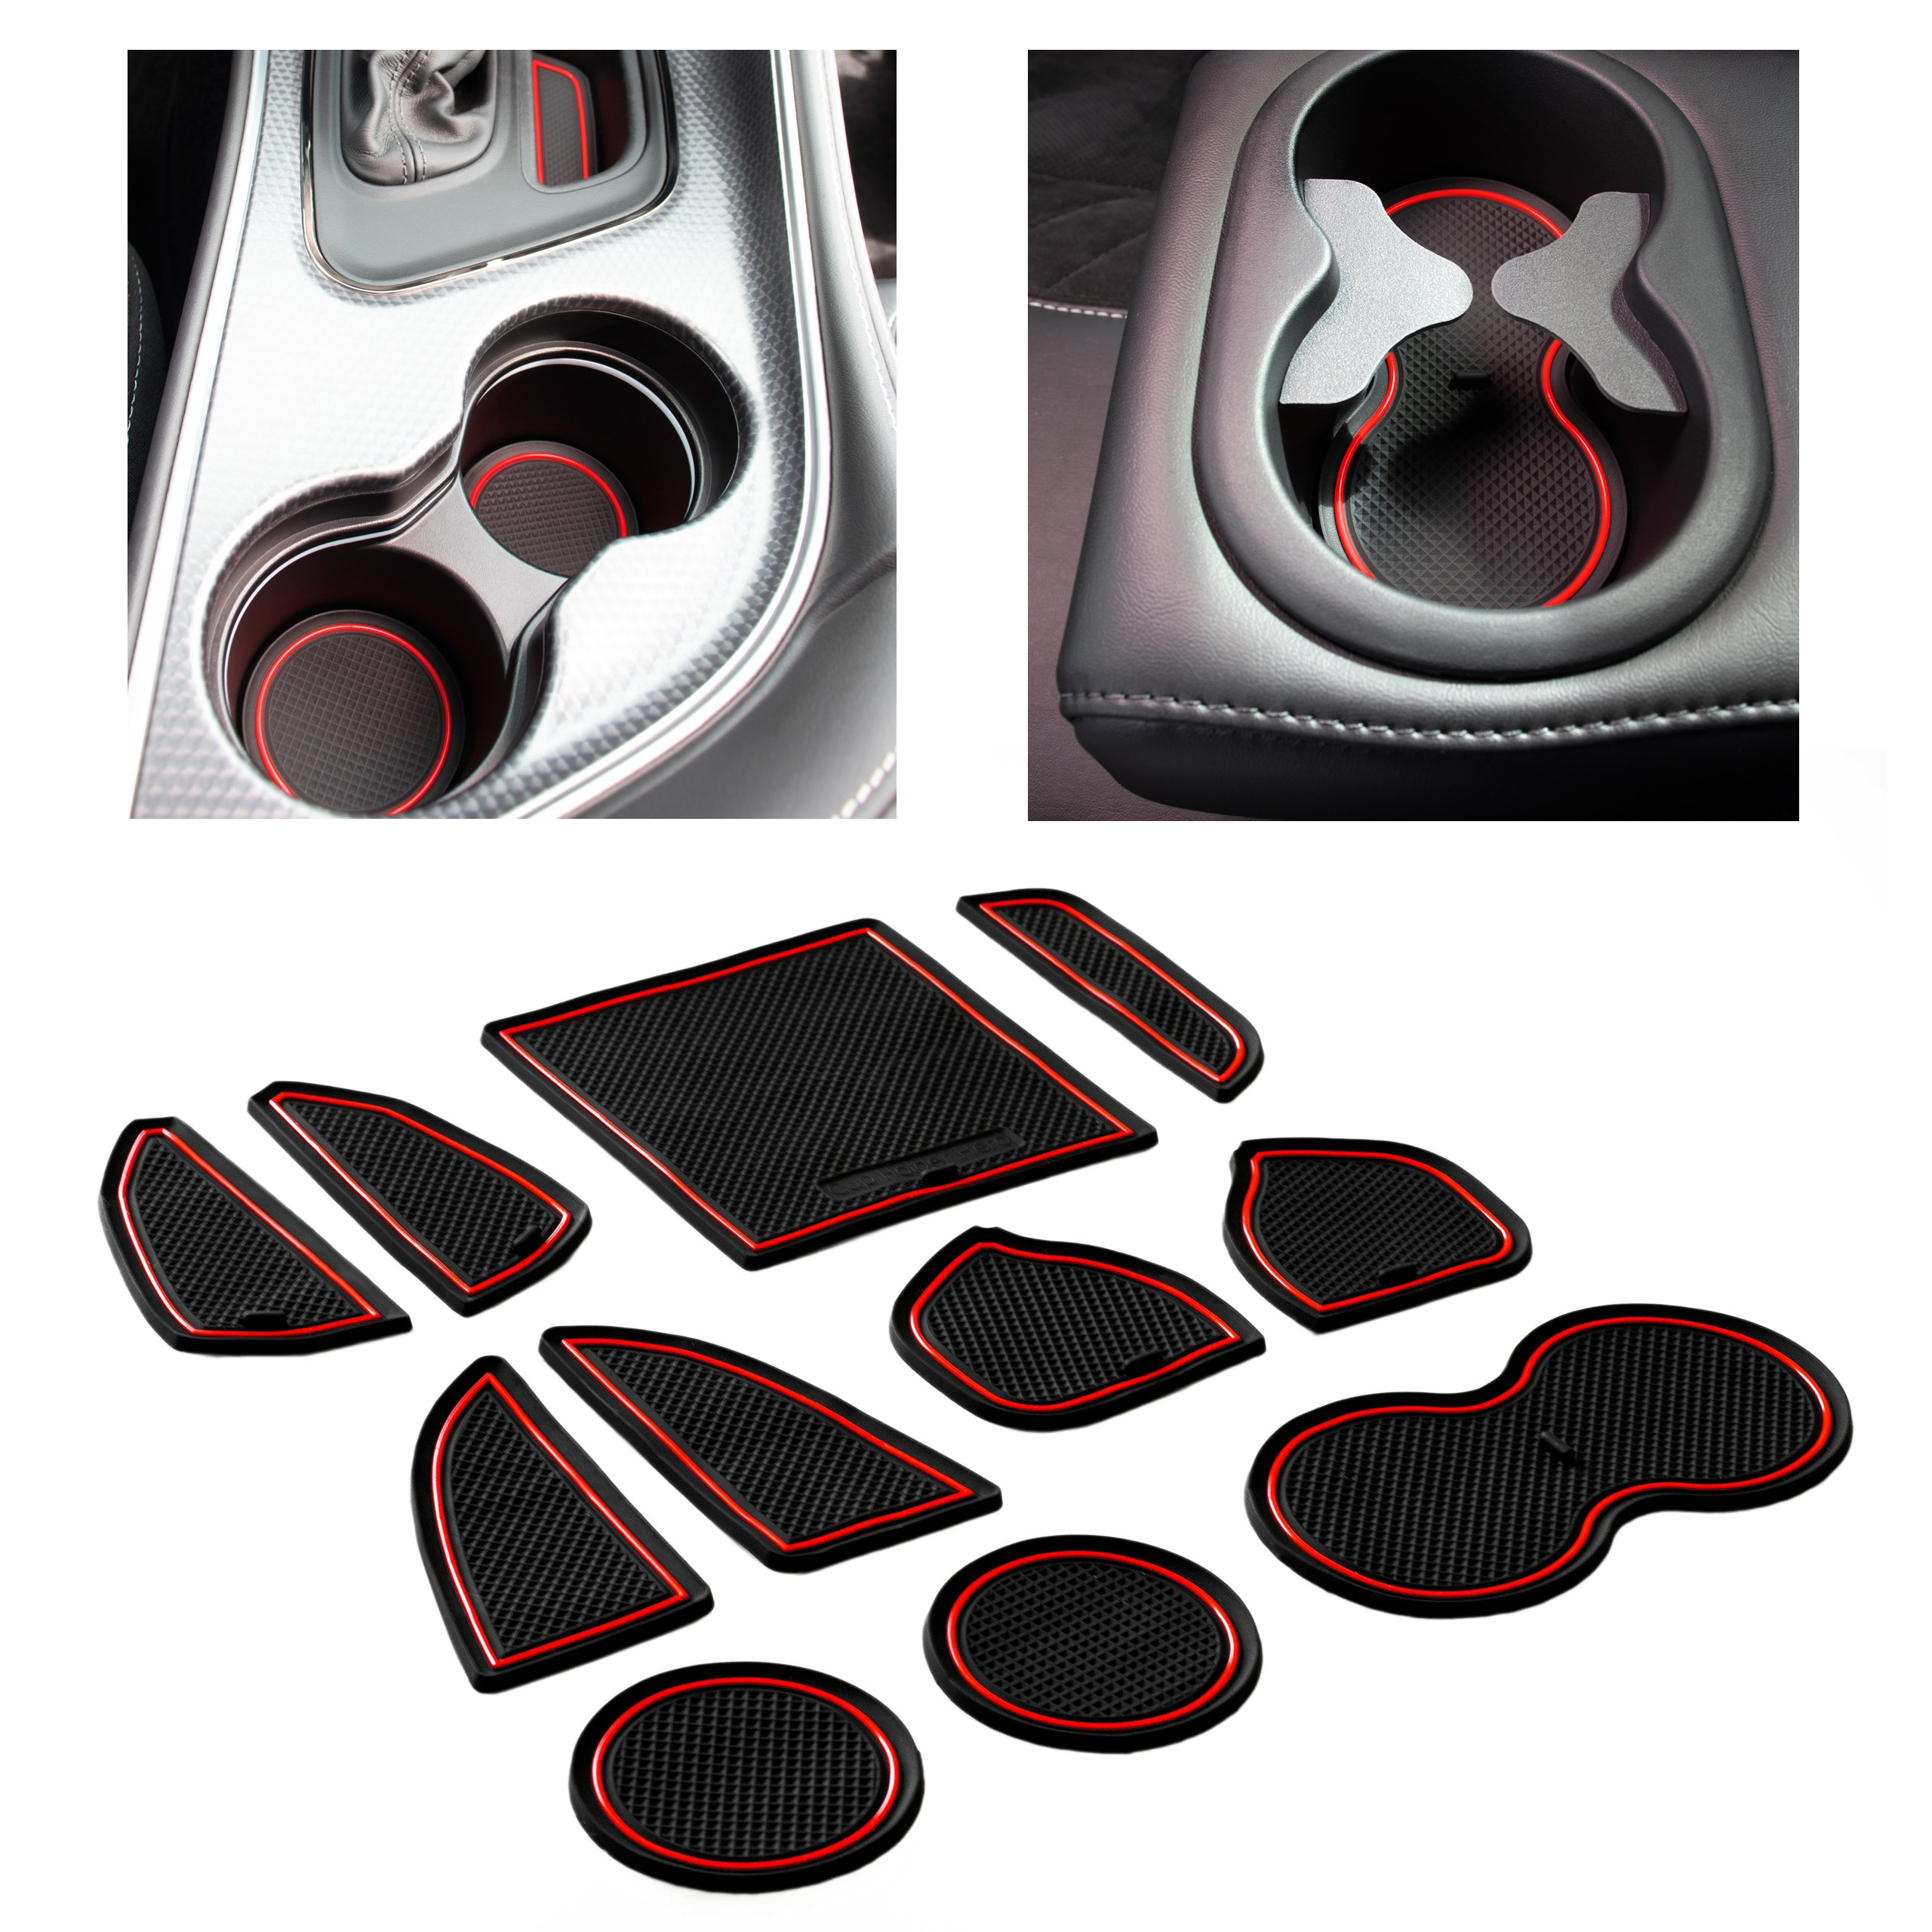 CupHolderHero-Dodge-Challenger-2015-2021-Liners-Accessories thumbnail 25